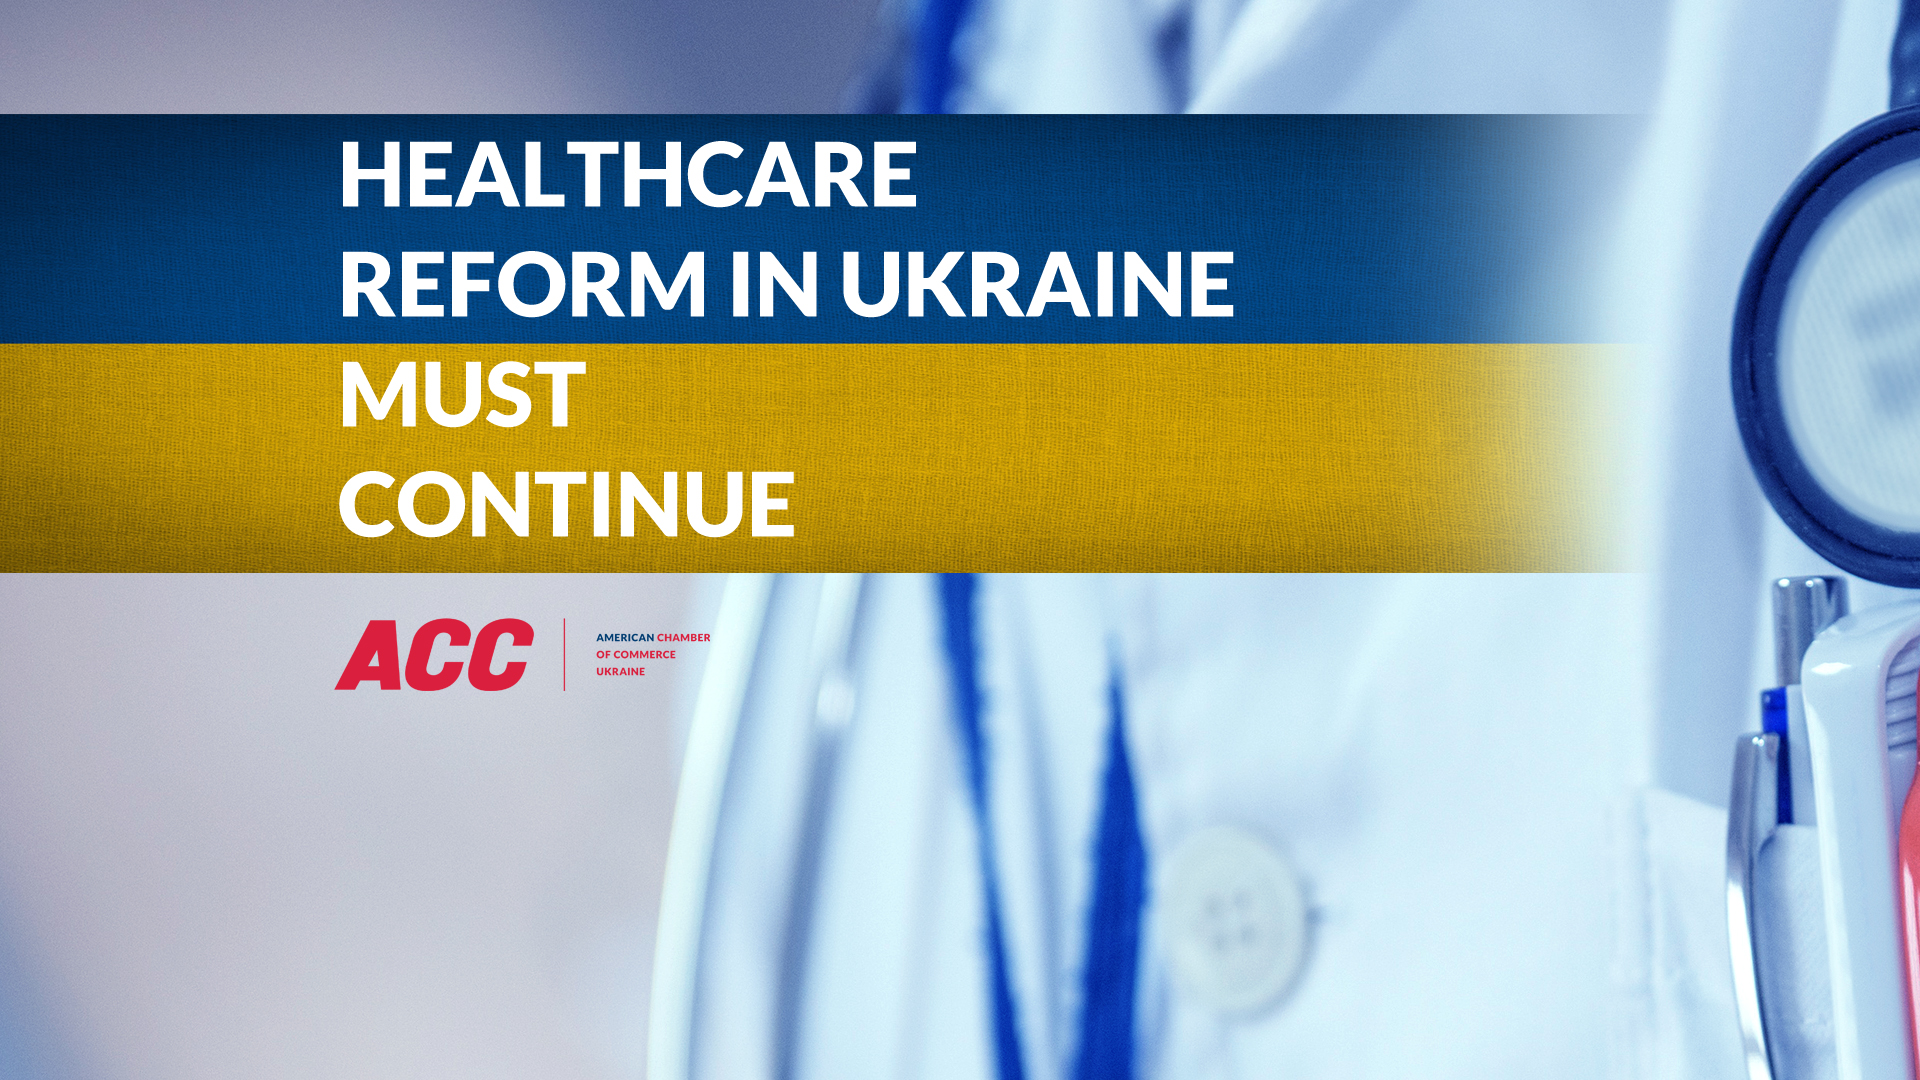 Healthcare Reform in Ukraine Must Continue – Statement of the American Chamber of Commerce in Ukraine